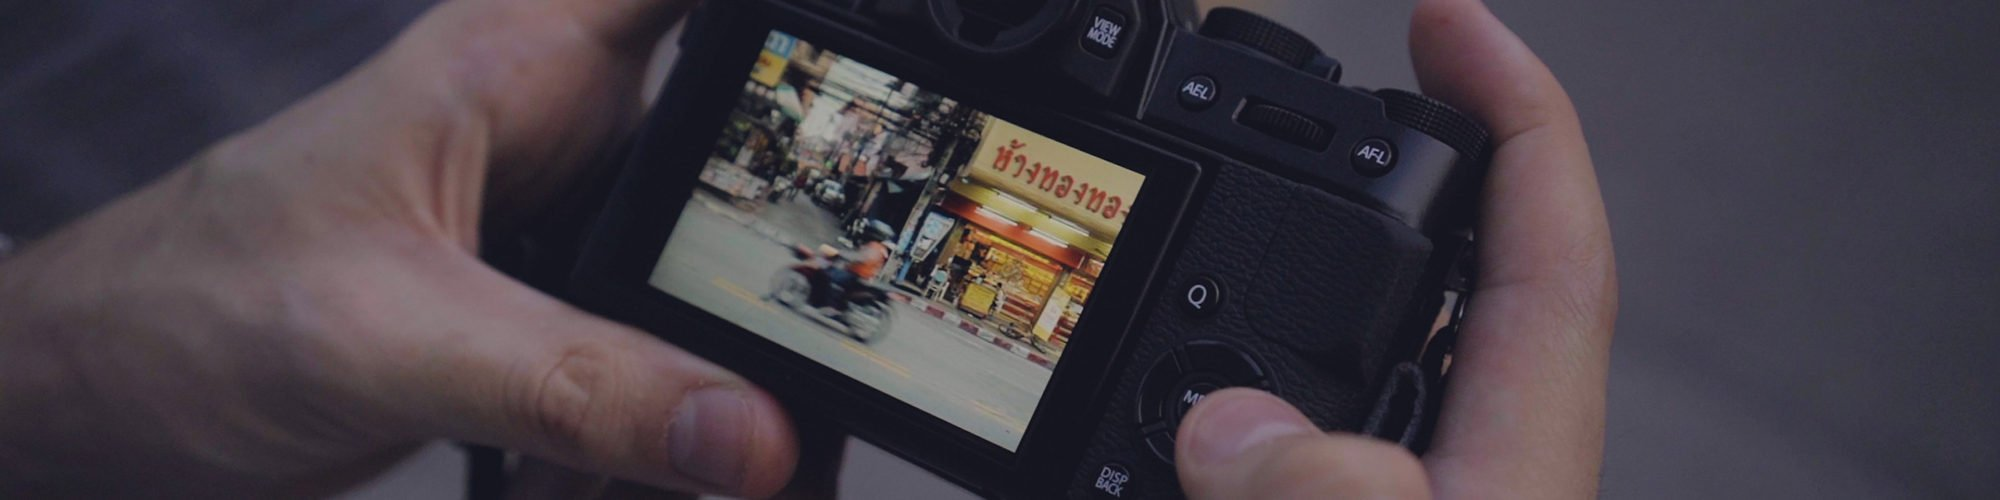 Fujifilm X-T10 Video Review in Pattaya Thailand